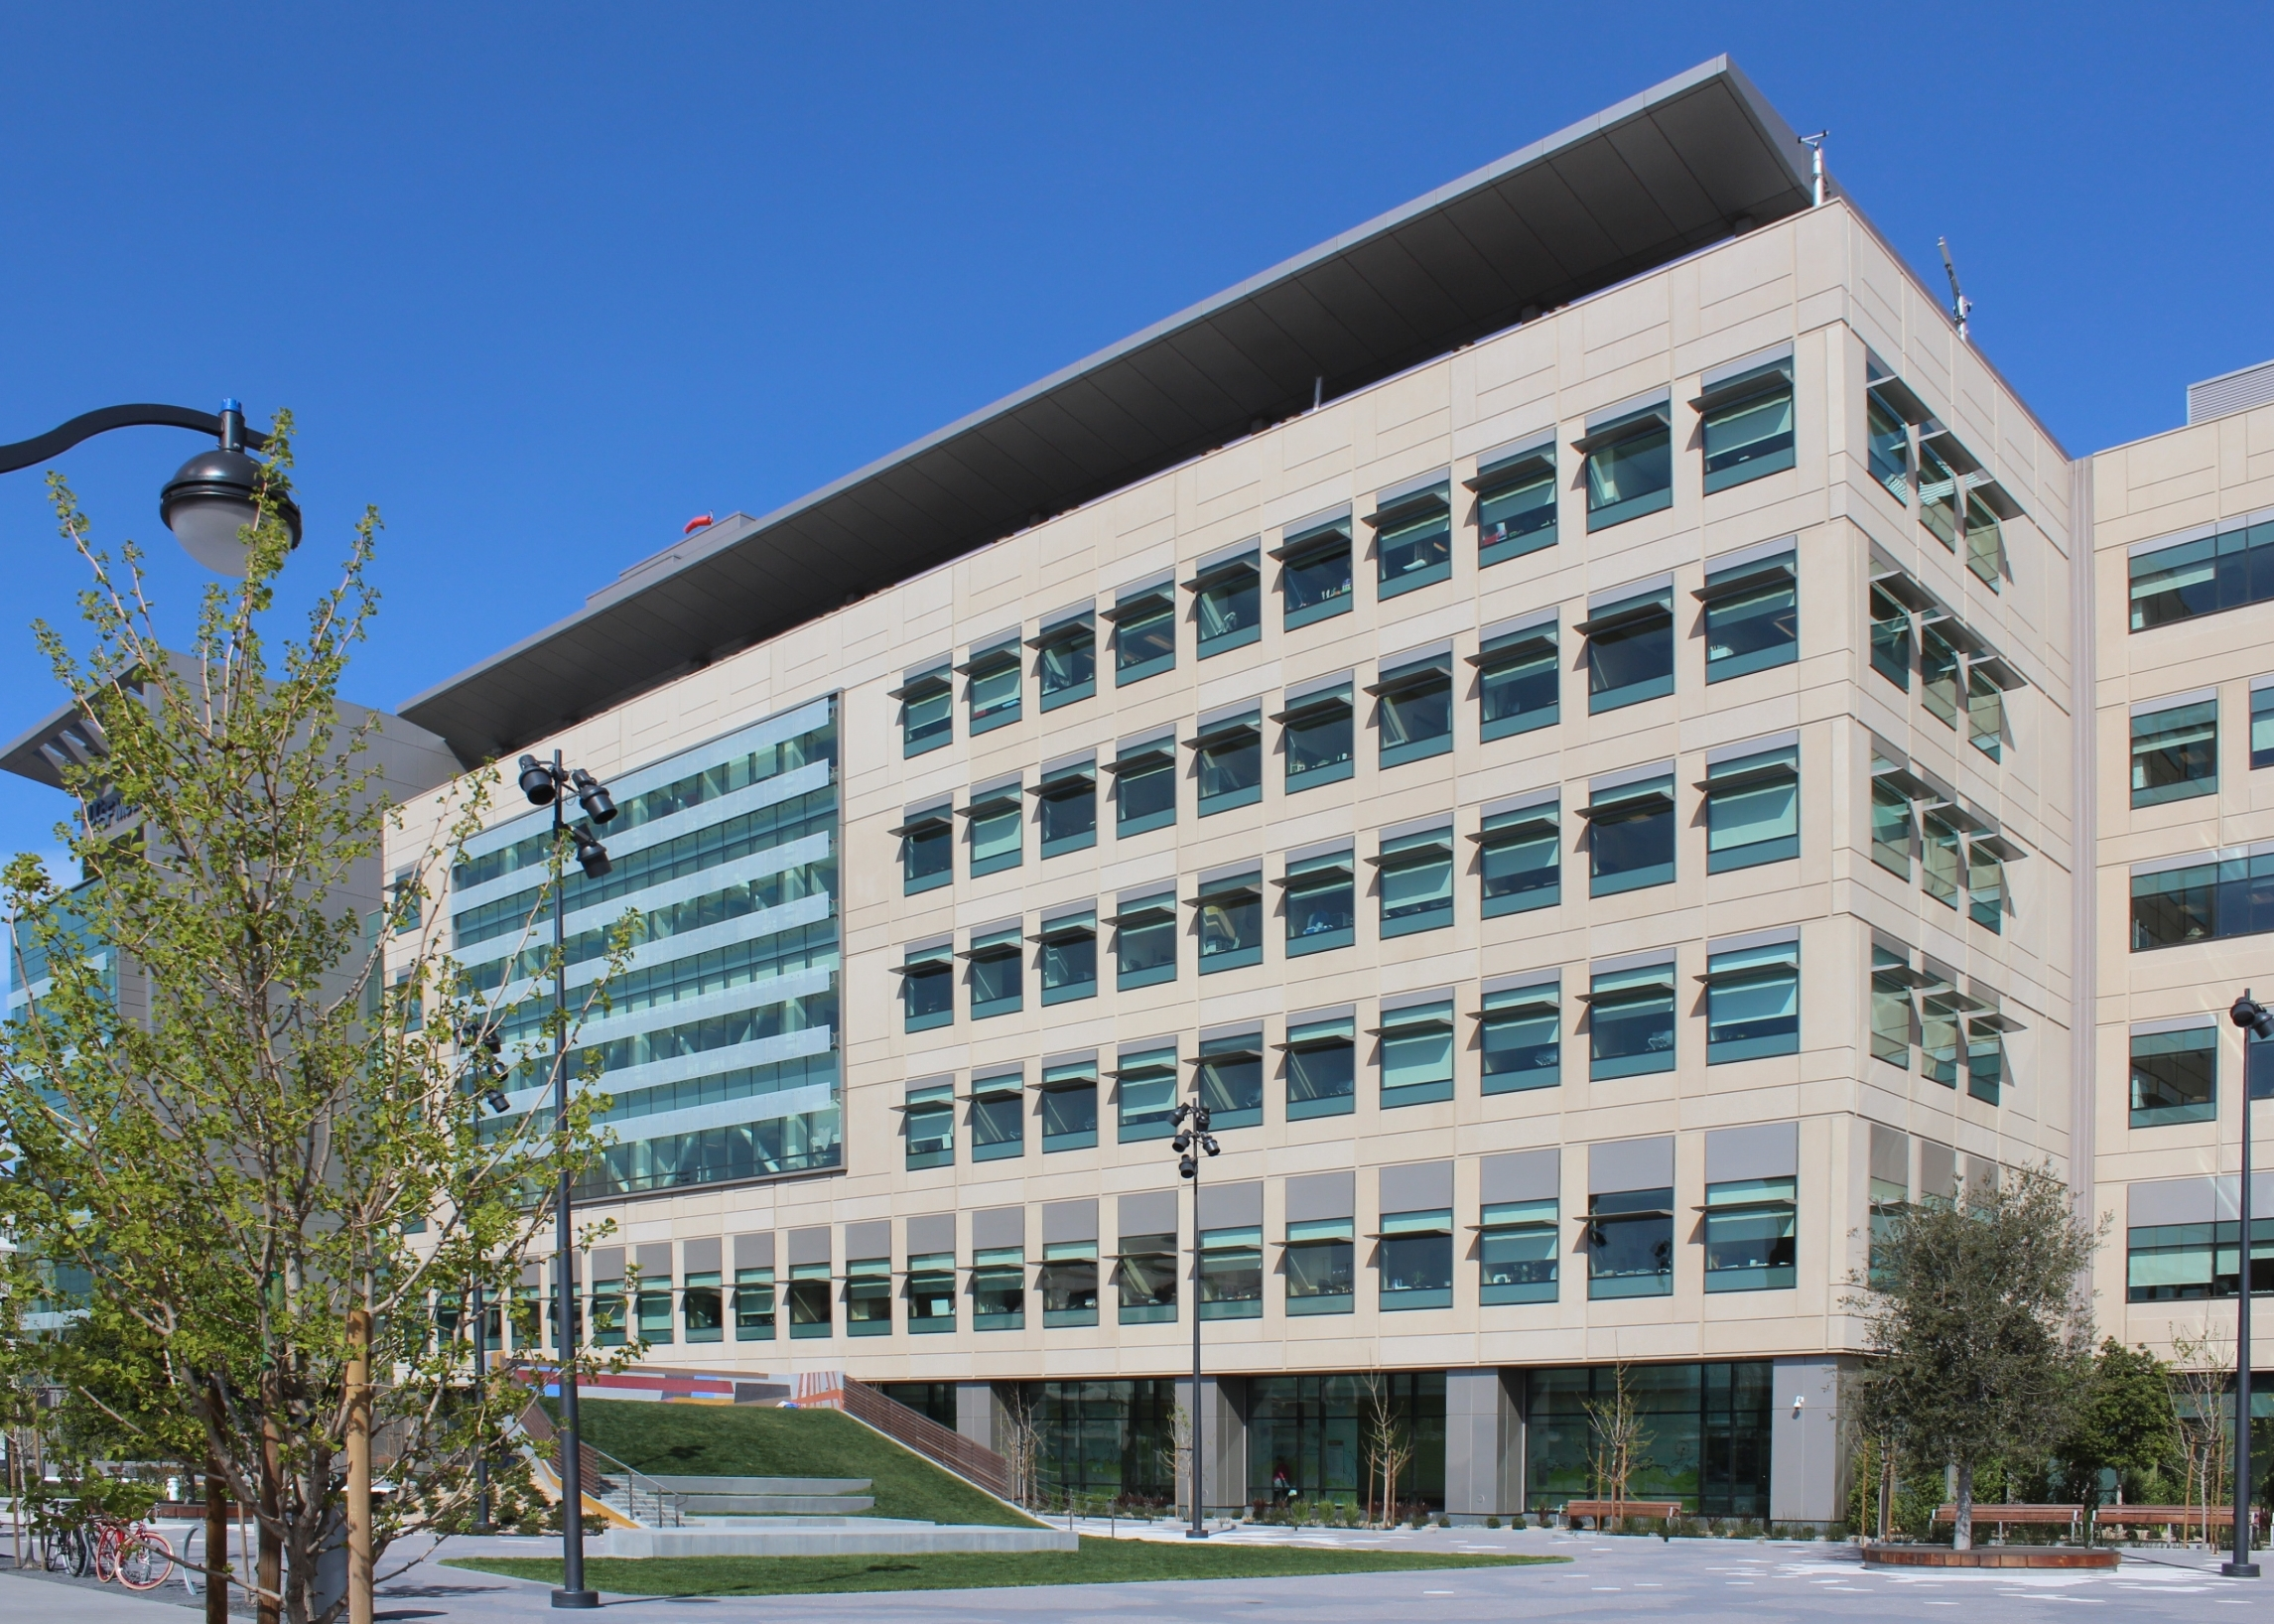 Architectural Precast Building : Ucsf medical center at mission bay